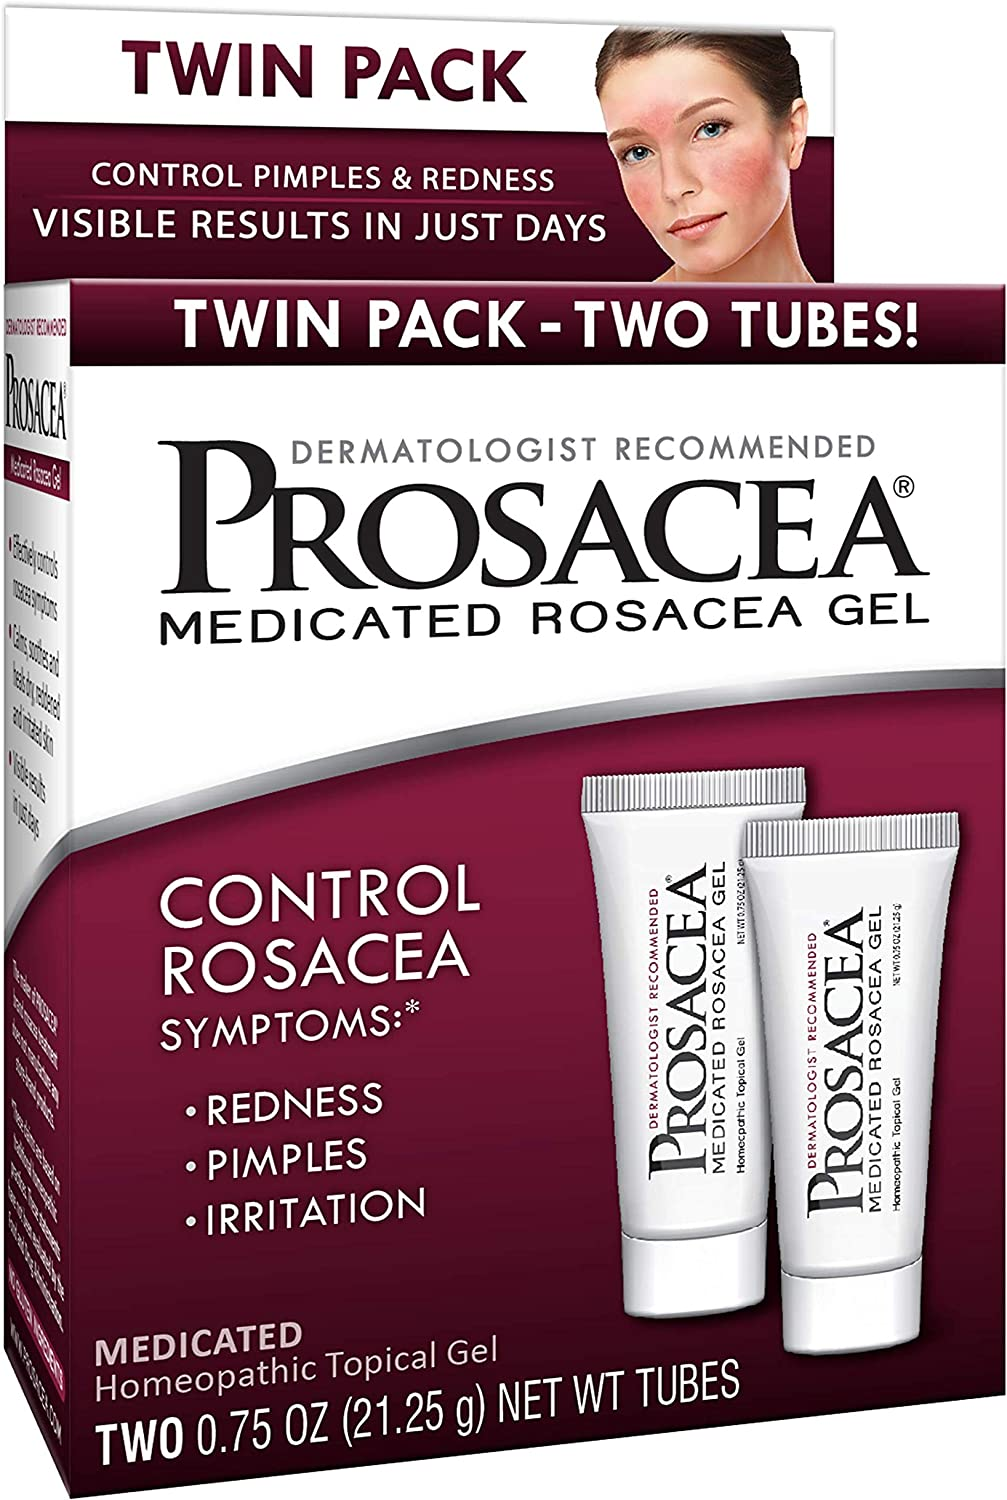 Prosacea Medicated Rosacea Gel - Controls Rosacea Symptoms of Redness, Pimples & Irritation - Twin Pack - Two 0.75oz Tubes (1.5oz Total)